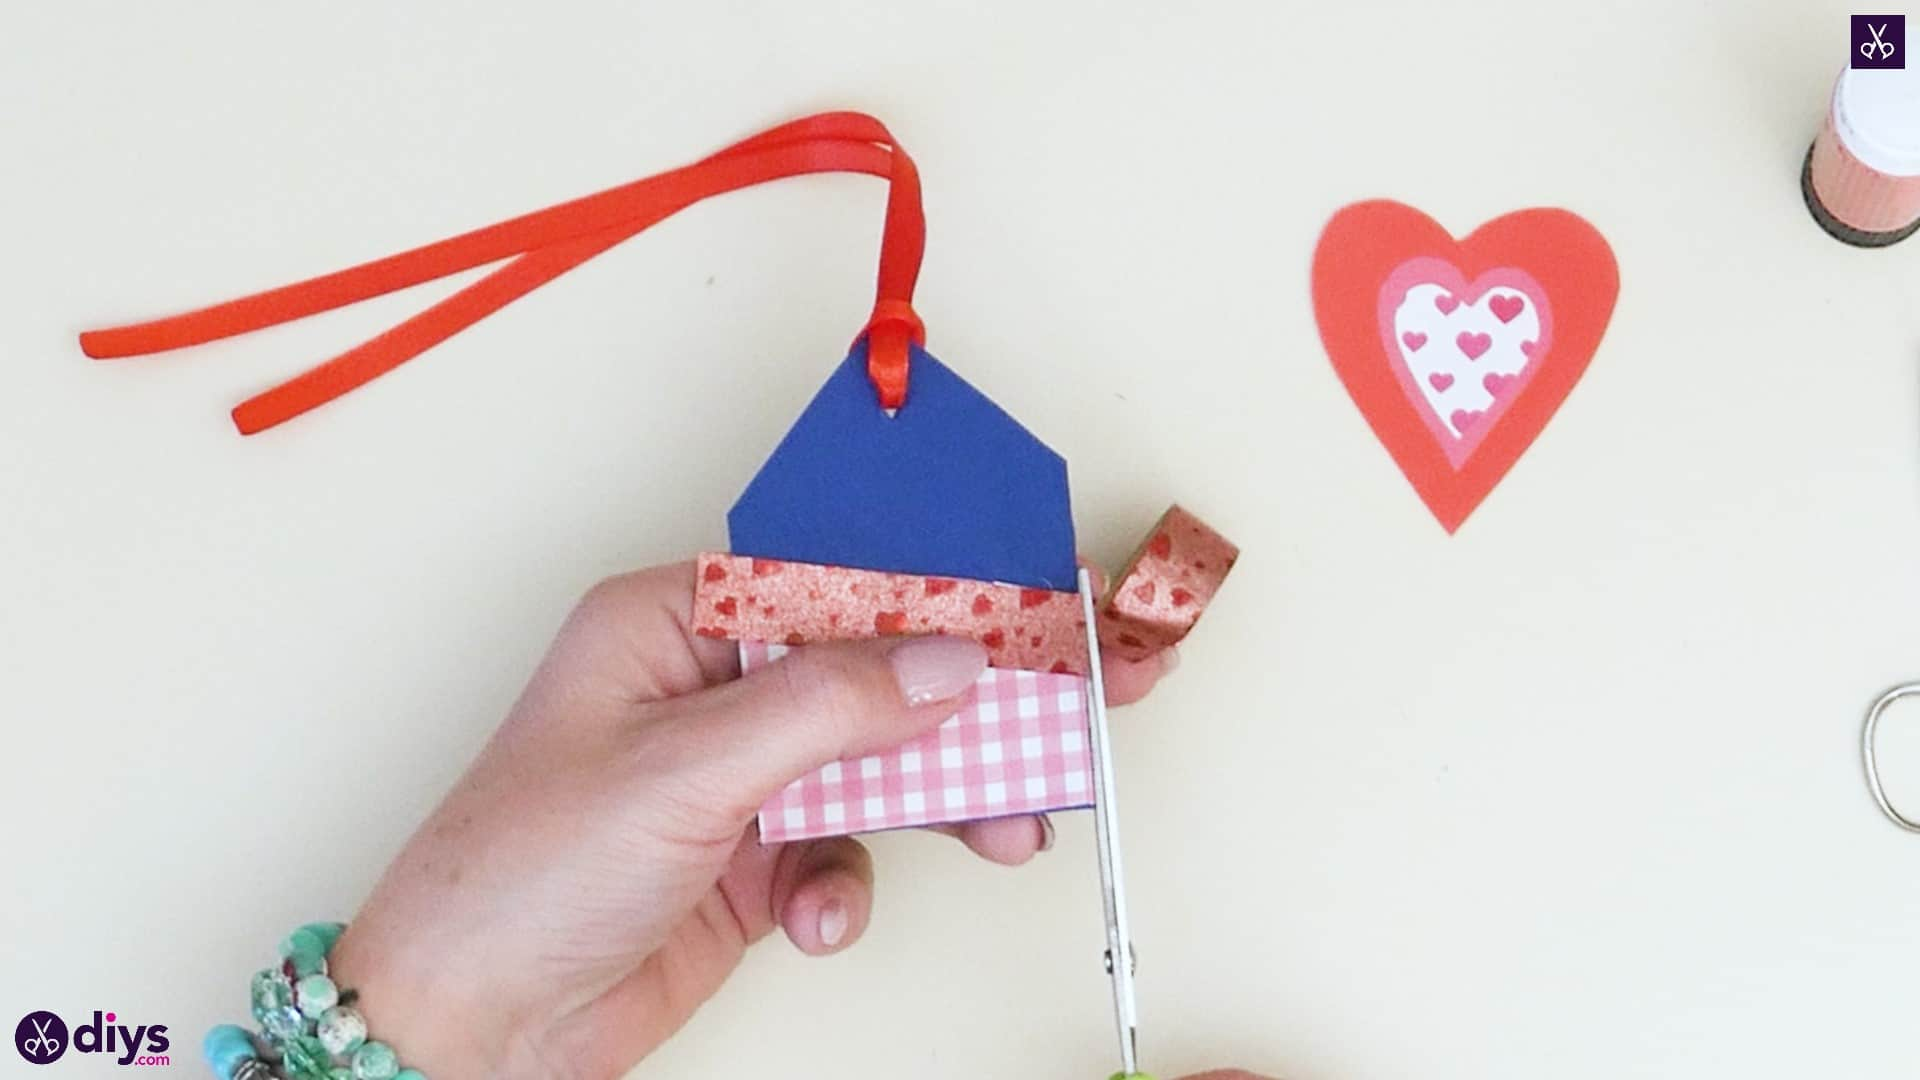 Diy pocketed gift tags step 9a